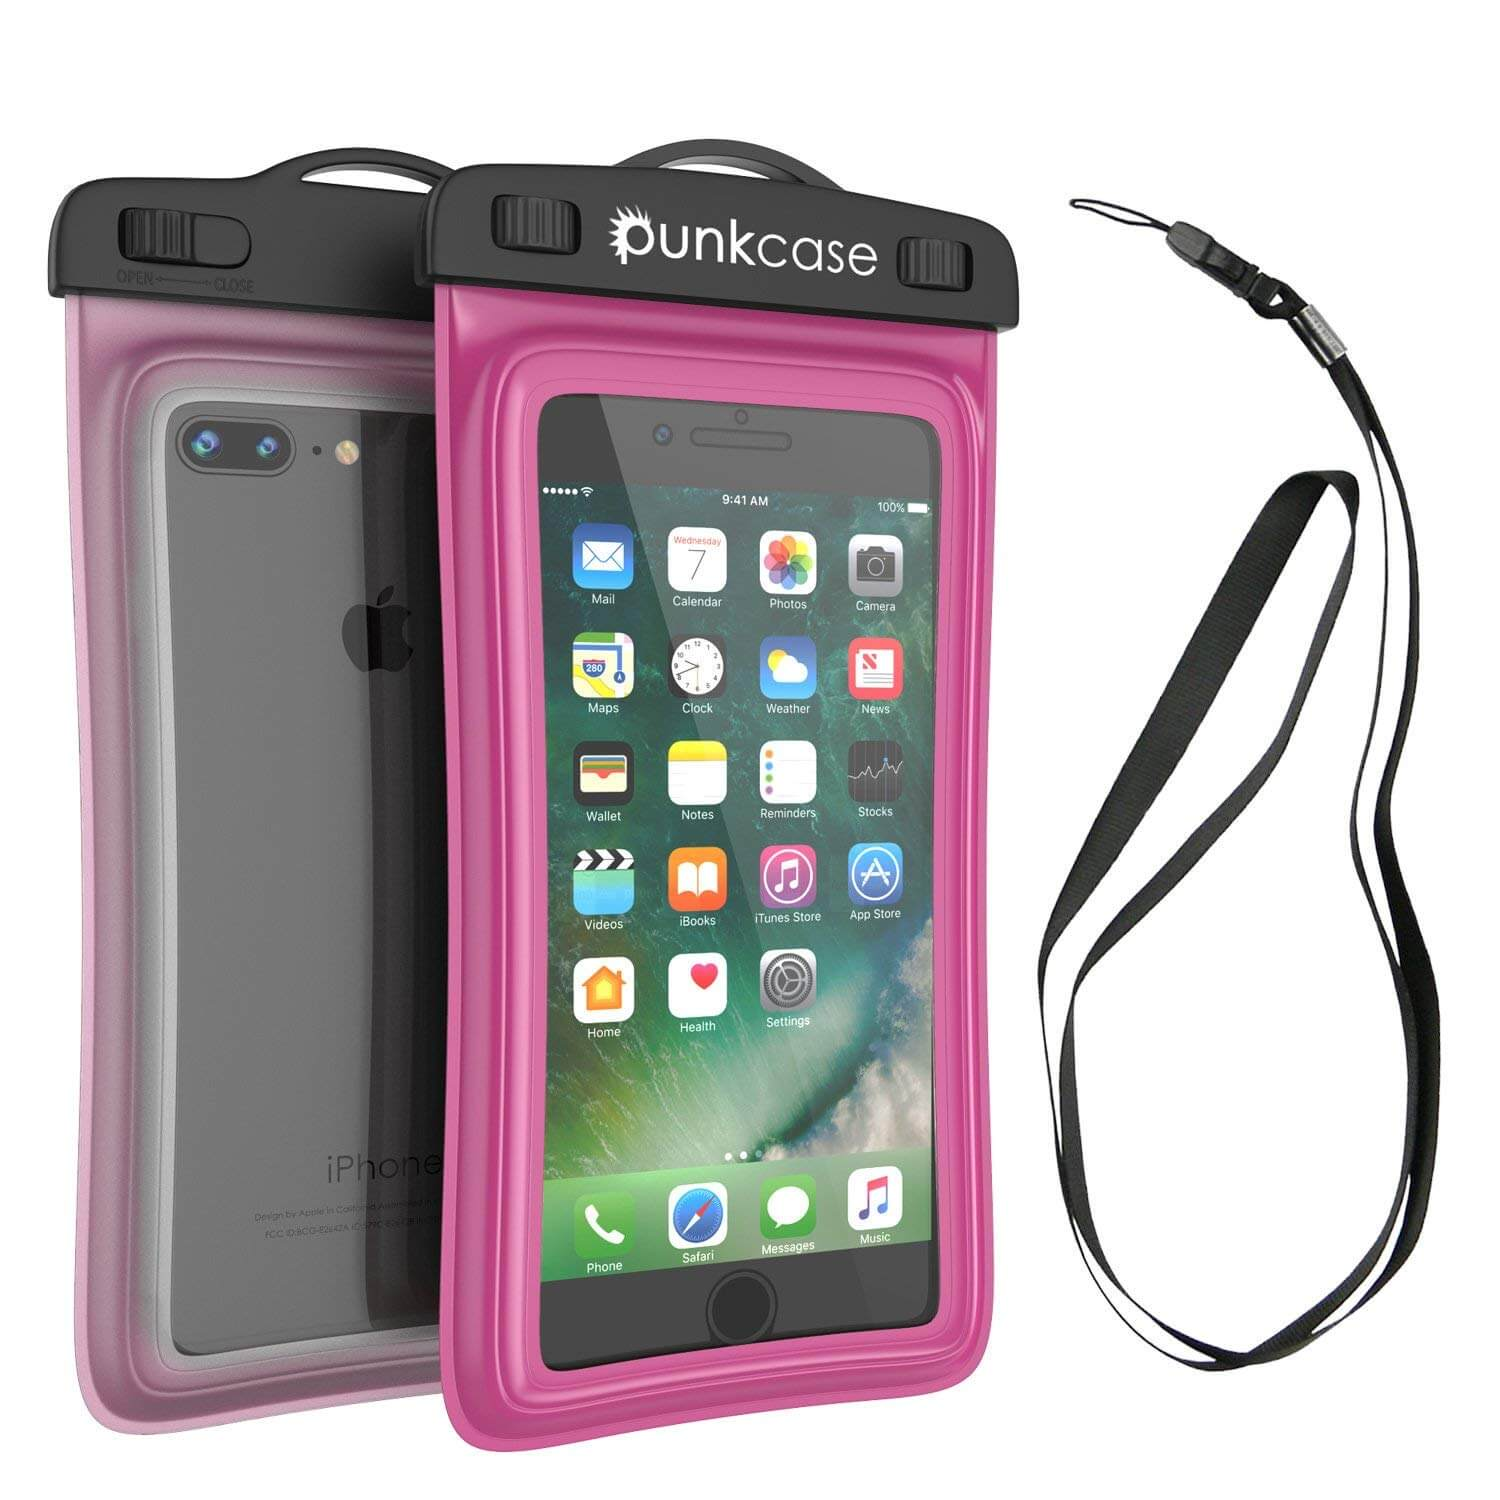 new concept 308d5 2d5a8 Waterproof Phone Pouch, PunkBag Universal Floating Dry Case Bag for most  Cell Phones [Pink]